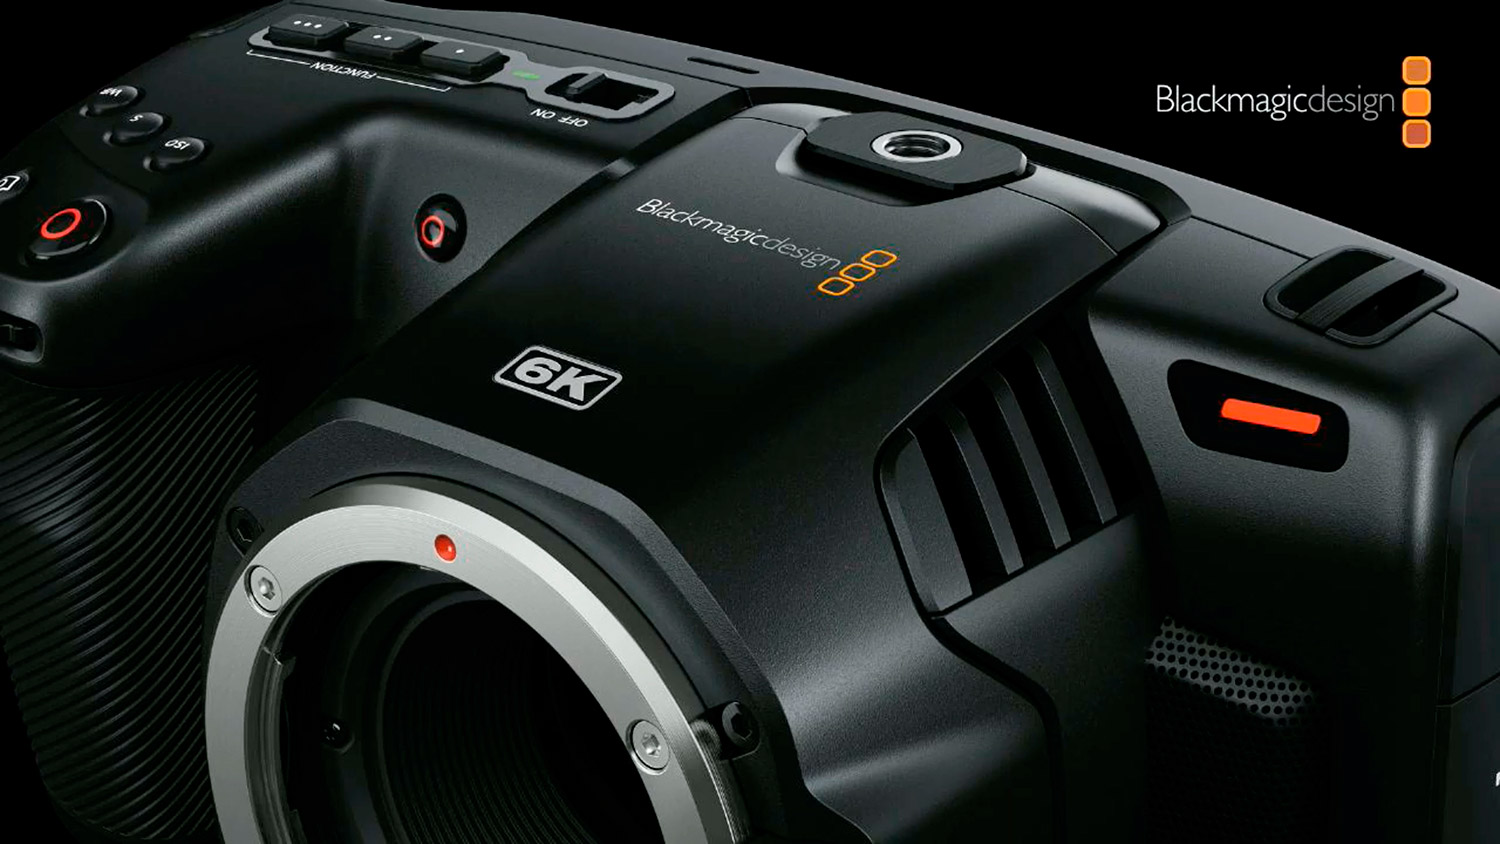 Портативная кинокамера Blackmagic Design Pocket Cinema Camera 6K EF